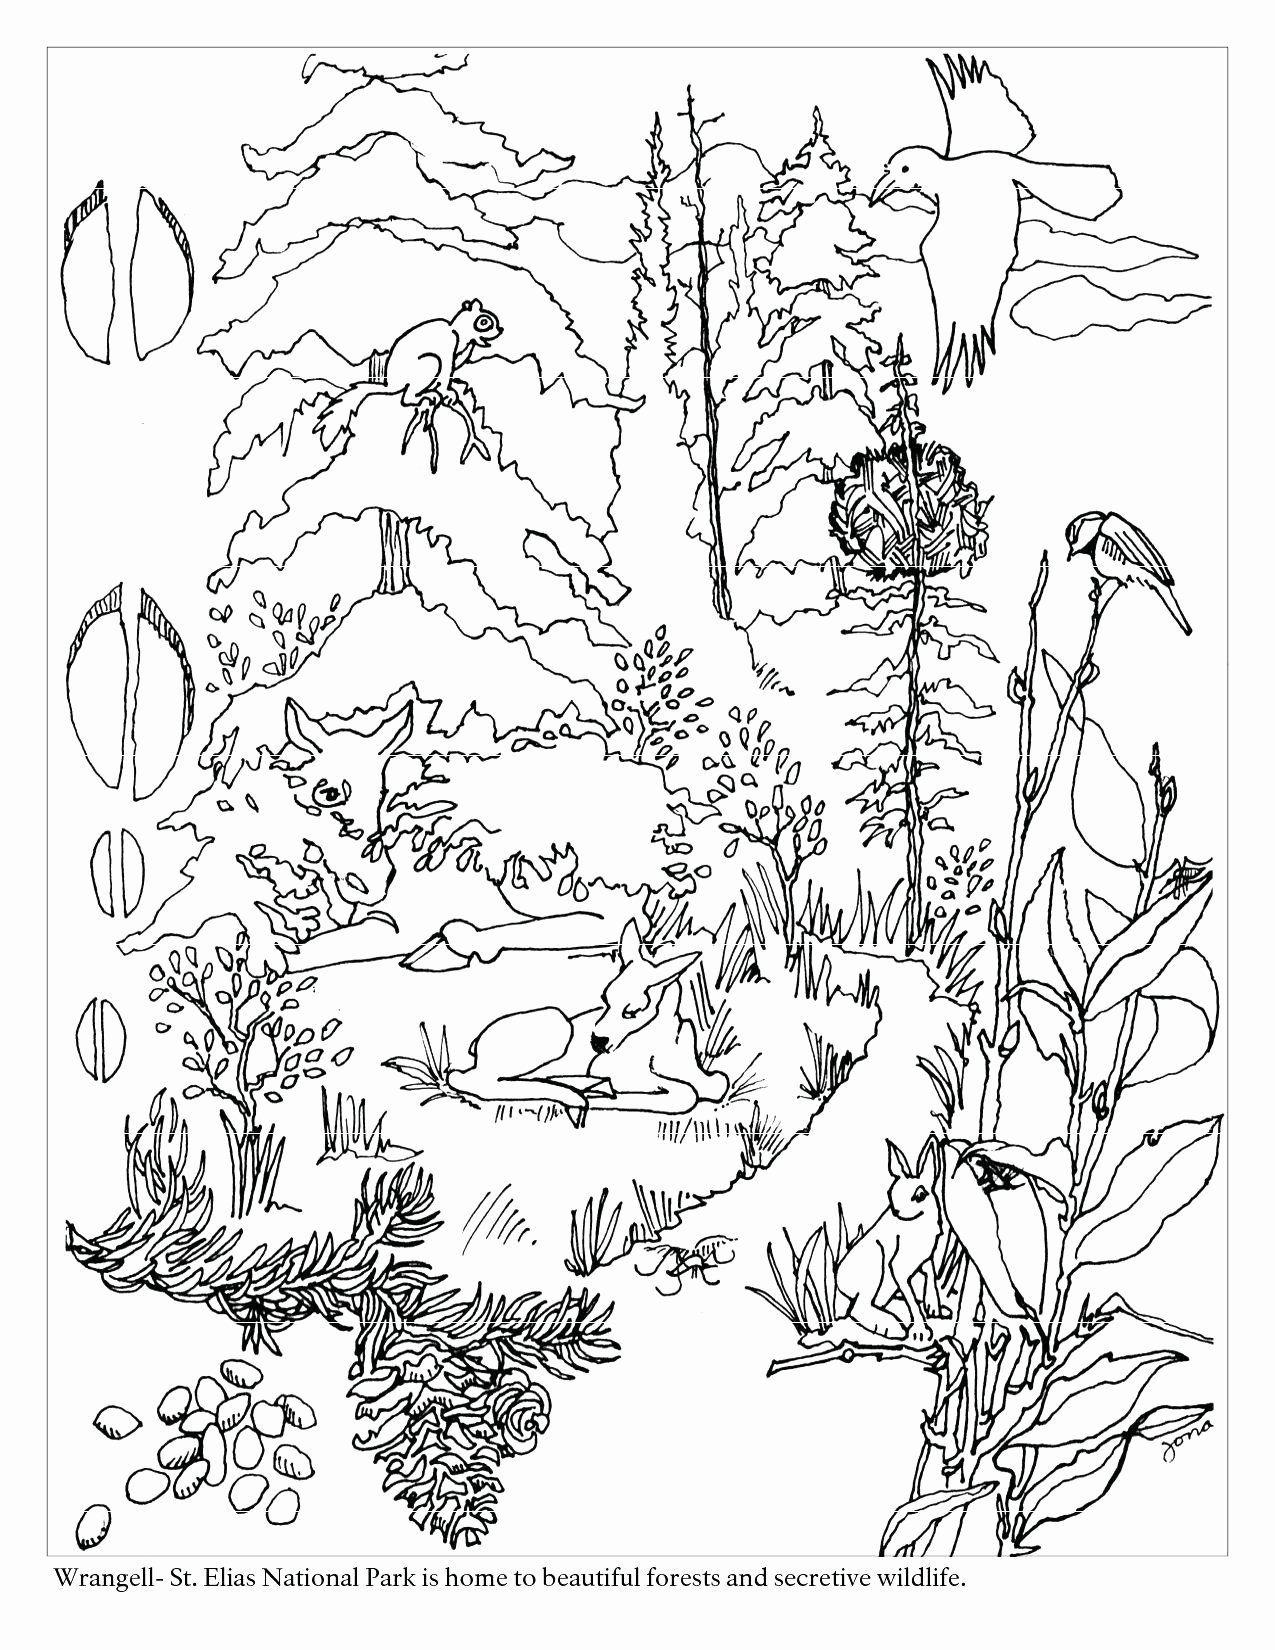 Coloring Sheets Jungle Animals Inspirational Rainforest Animals Coloring Sheets Whol Forest Coloring Pages Animal Coloring Pages Coloring Pictures Of Animals